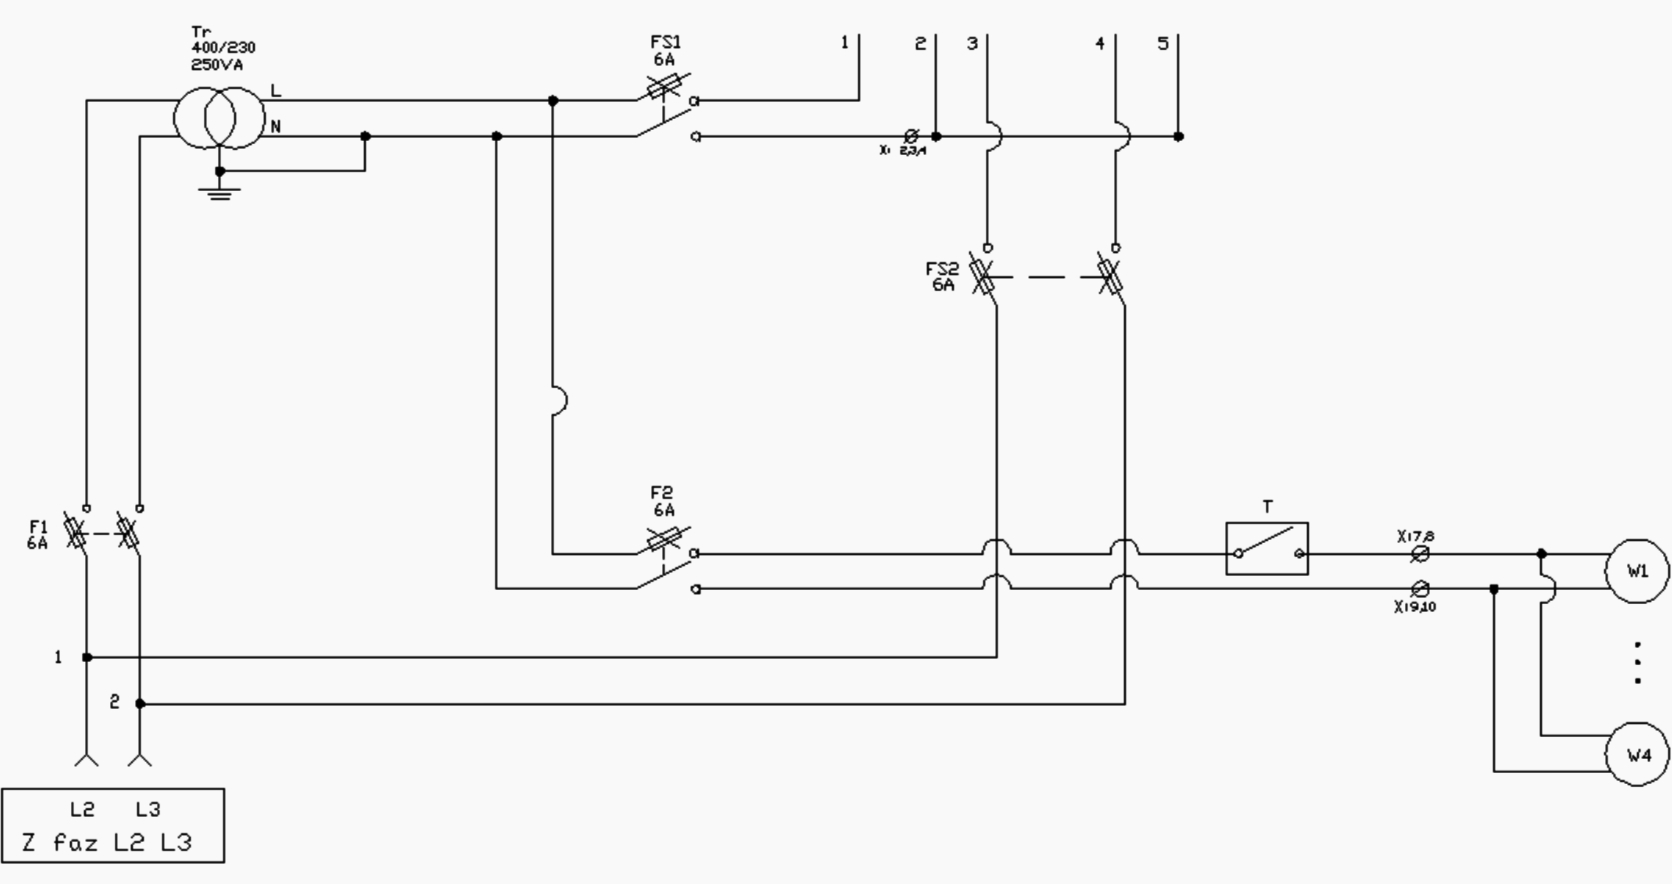 3 Phase Capacitor Bank Wiring Diagram Collection Sample Building Download Control Circuit Of 6 I